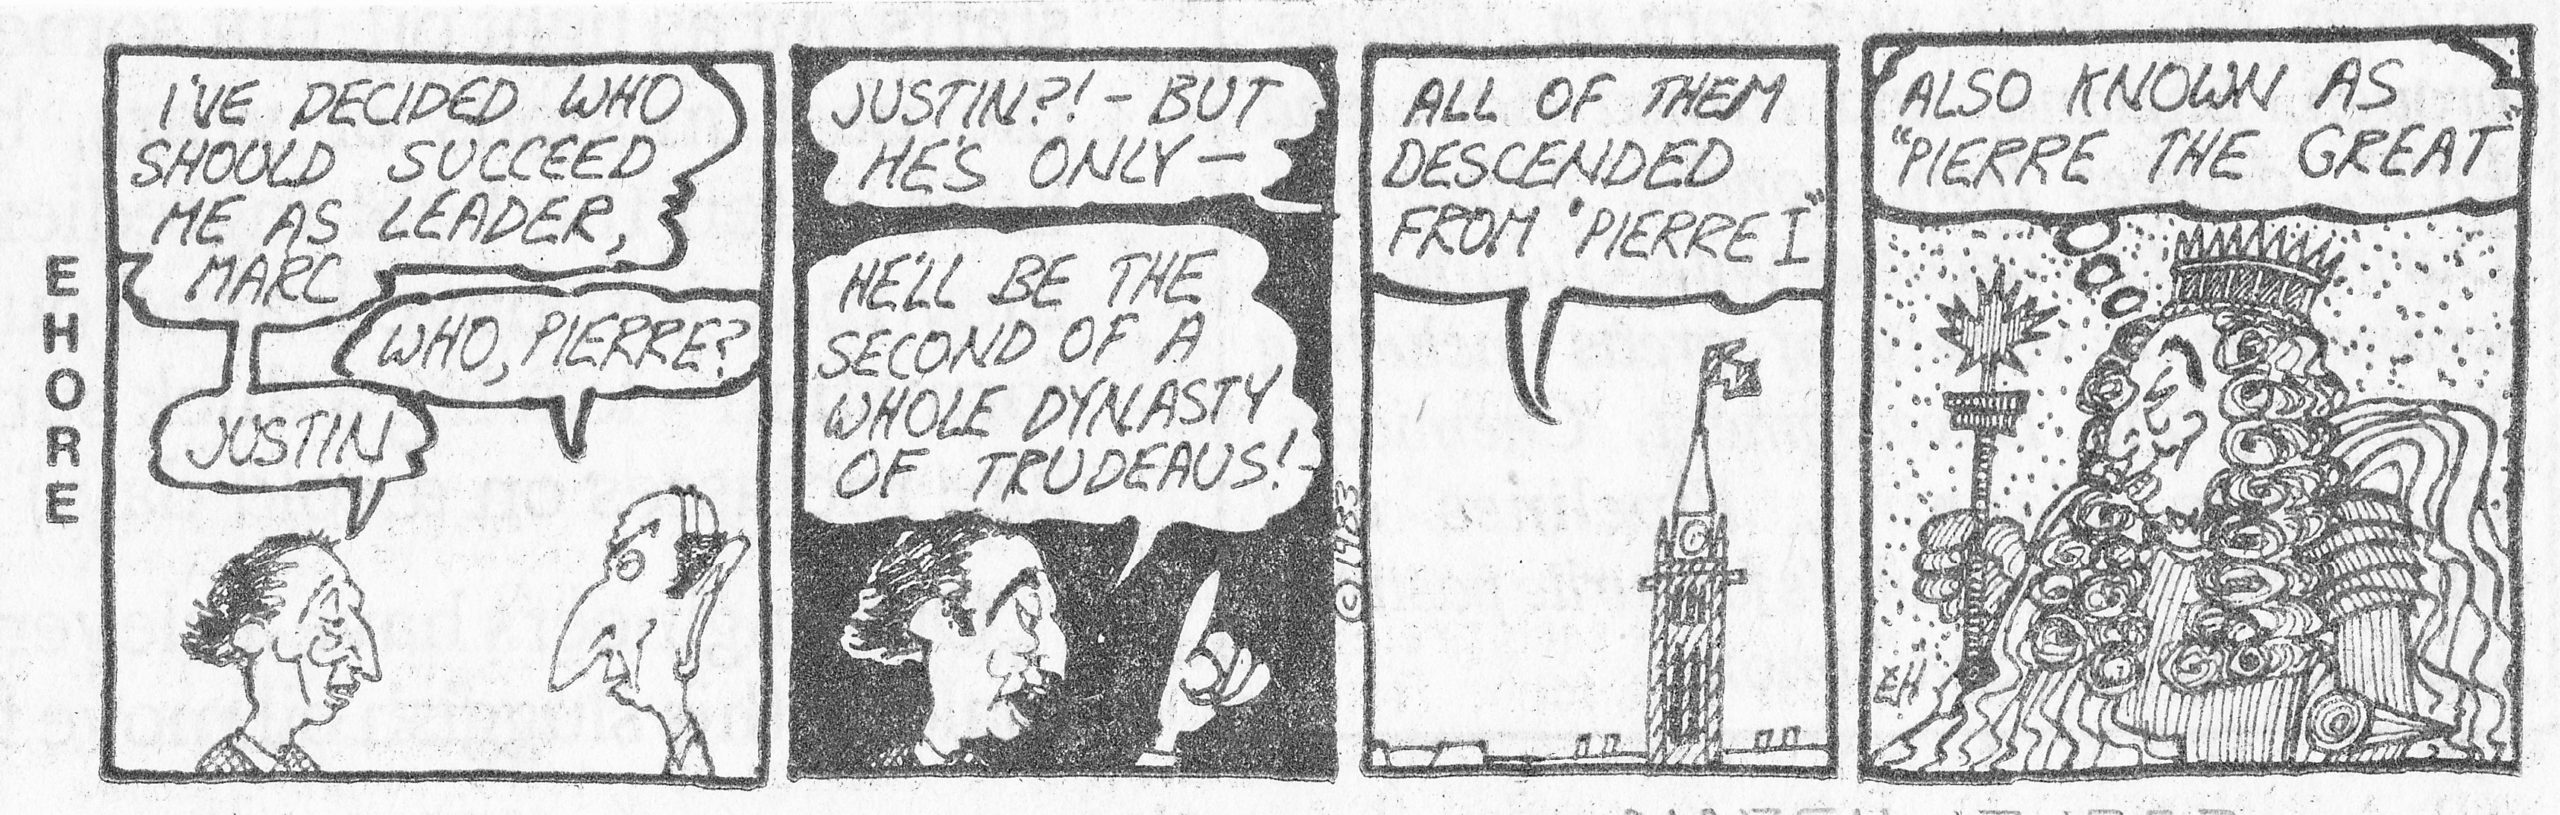 C:\Users\Robert\Documents\CARTOONING ILLUSTRATION ANIMATION\IMAGE CARTOON\IMAGE CARTOON E\EHORE, Globe & Mail, 17 Mar. 1983.jpg